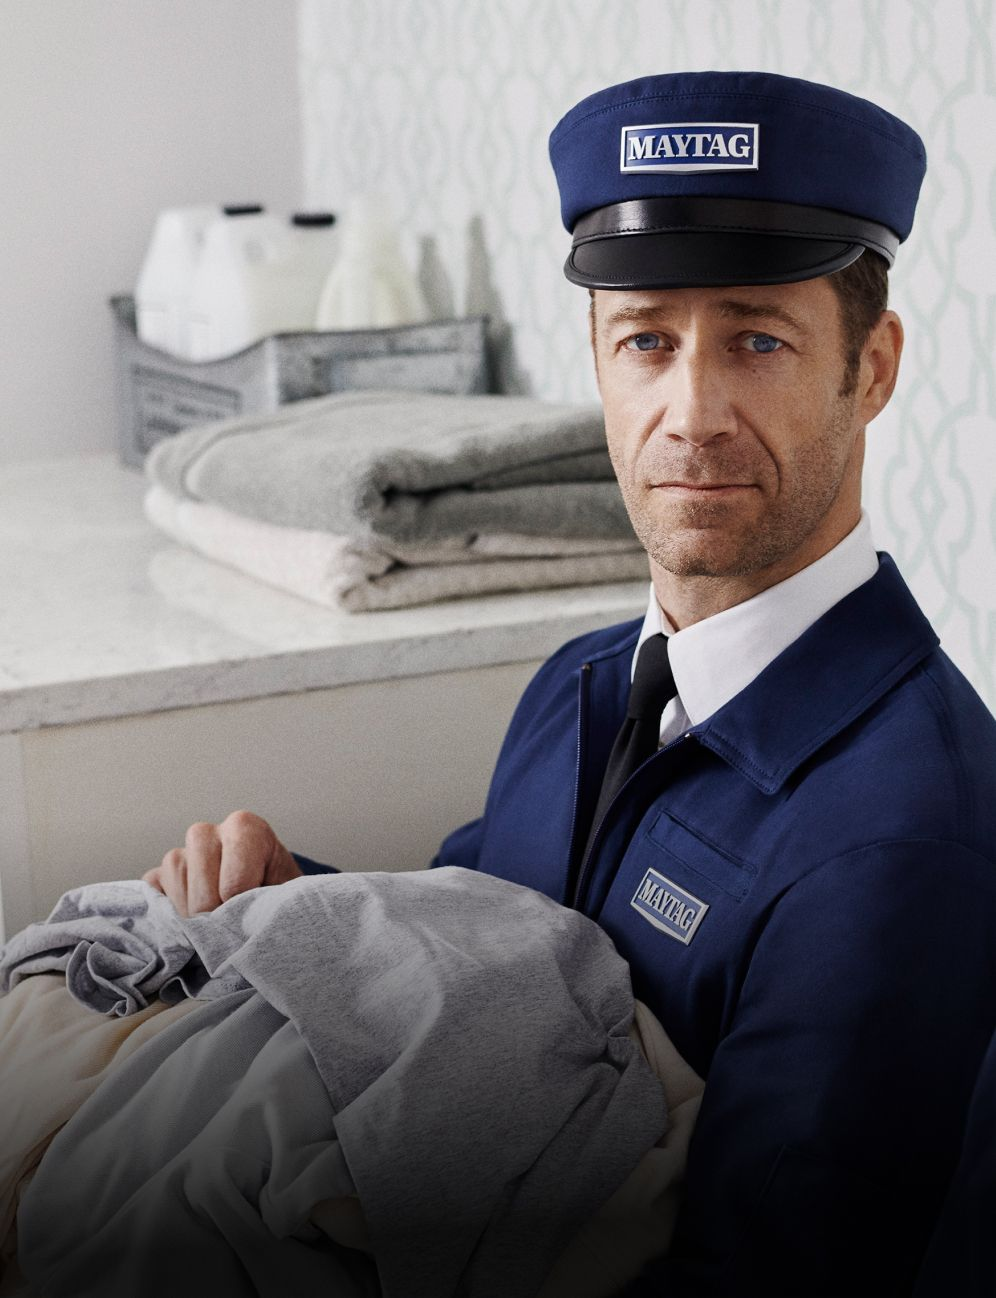 Maytag man holding clothes.